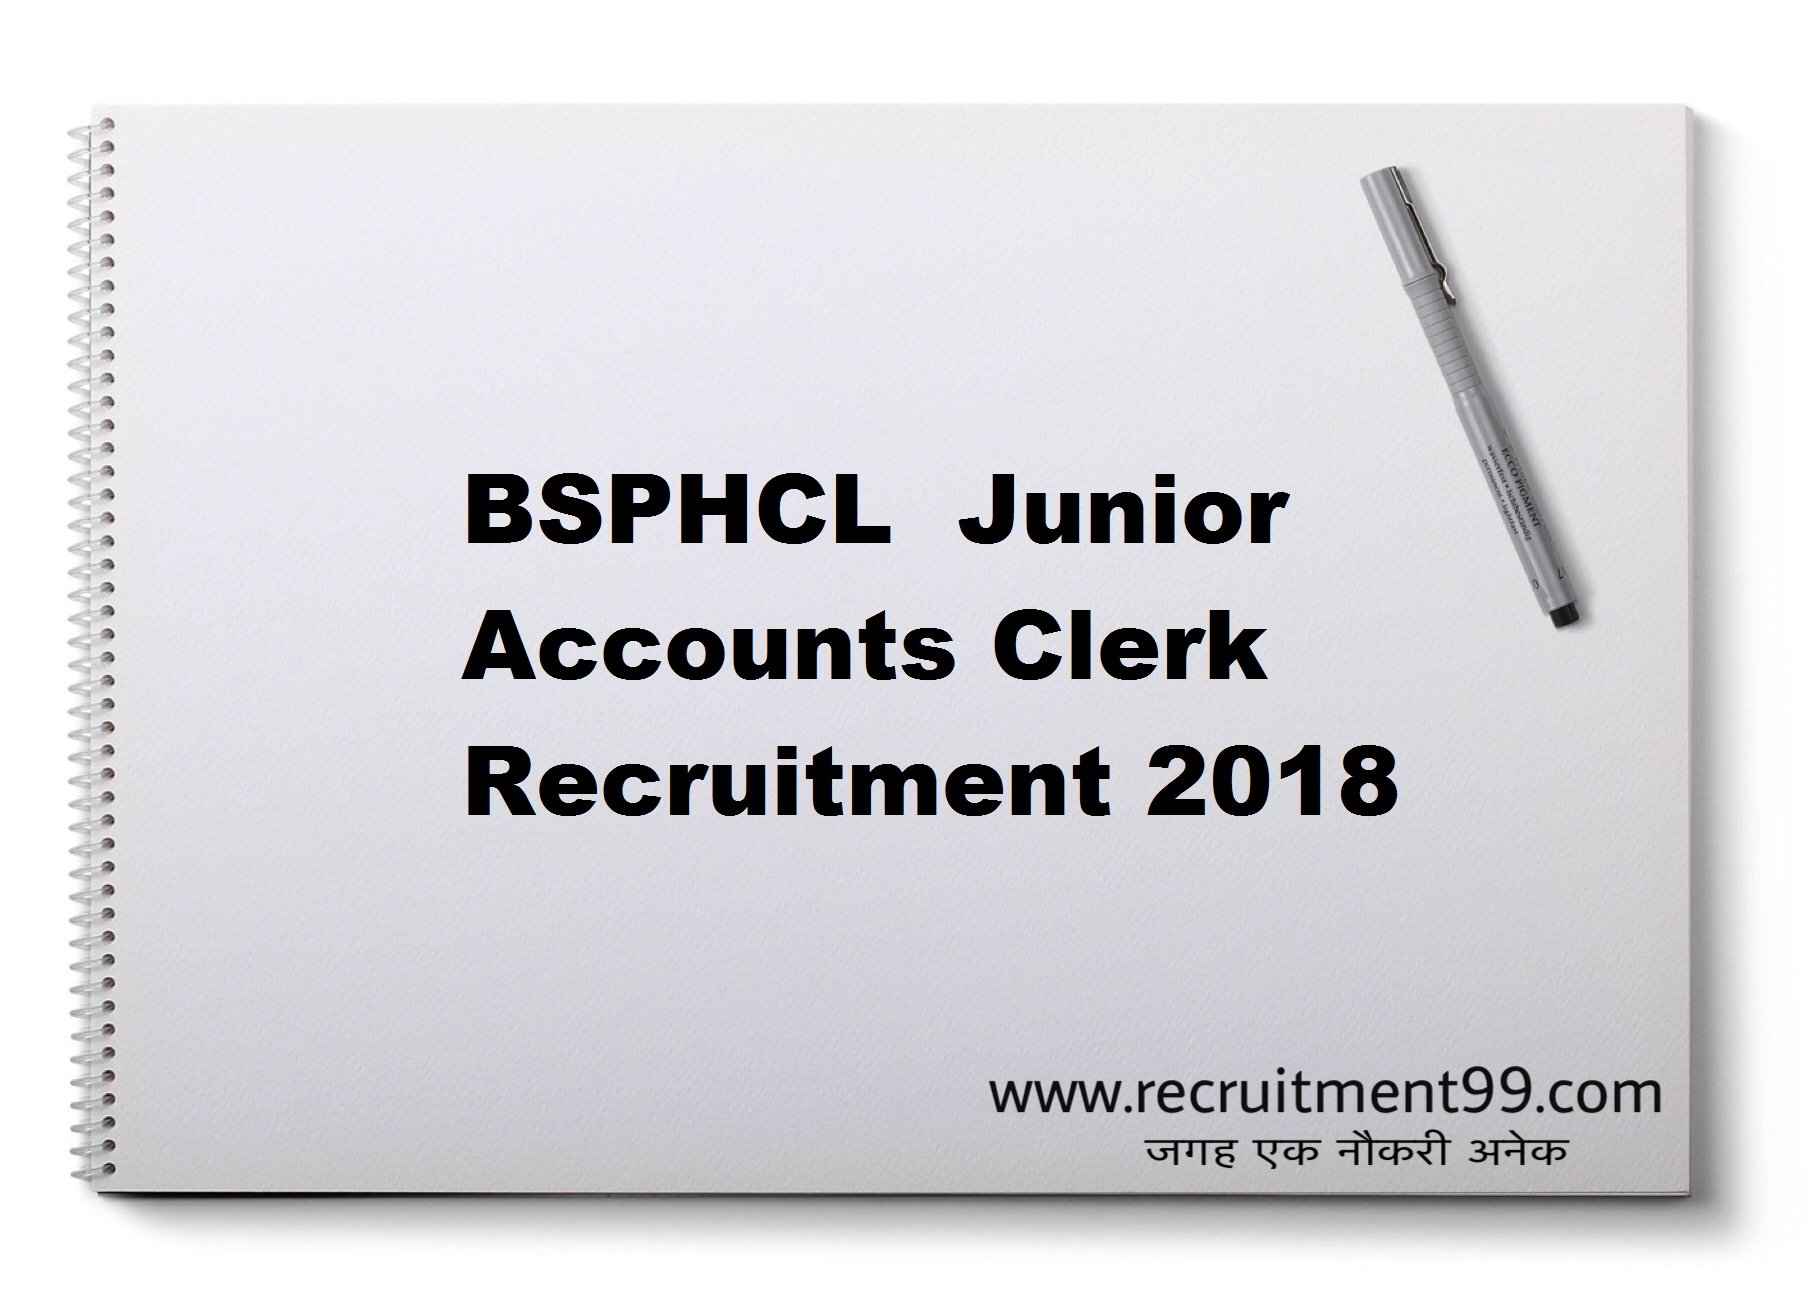 BSPHCL Junior Accounts Clerk Recruitment Admit Card Result 2018